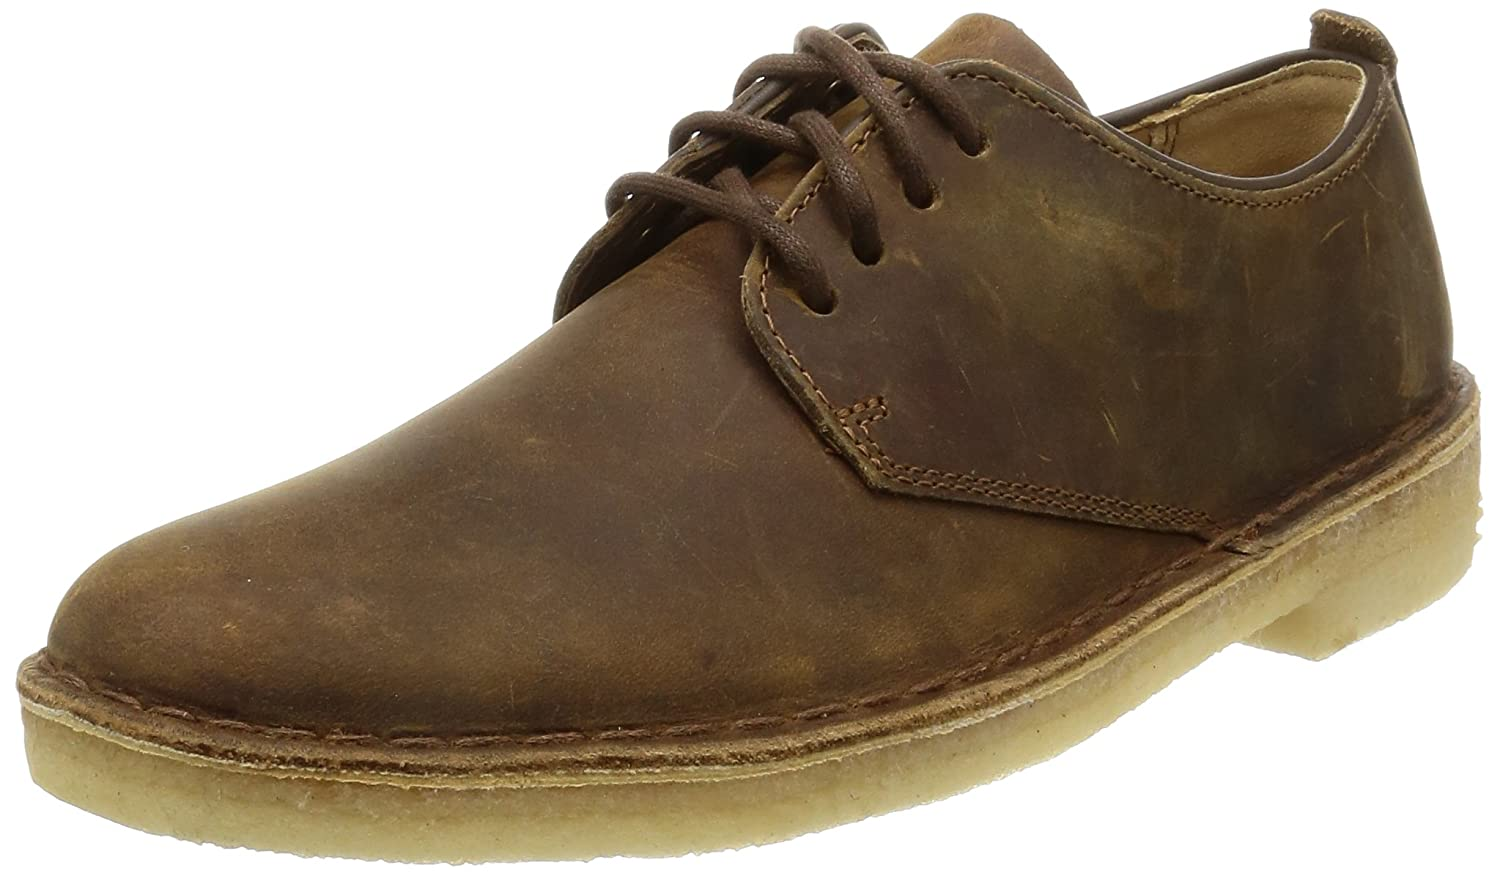 6bf815ec0b2 Clarks Originals Desert London